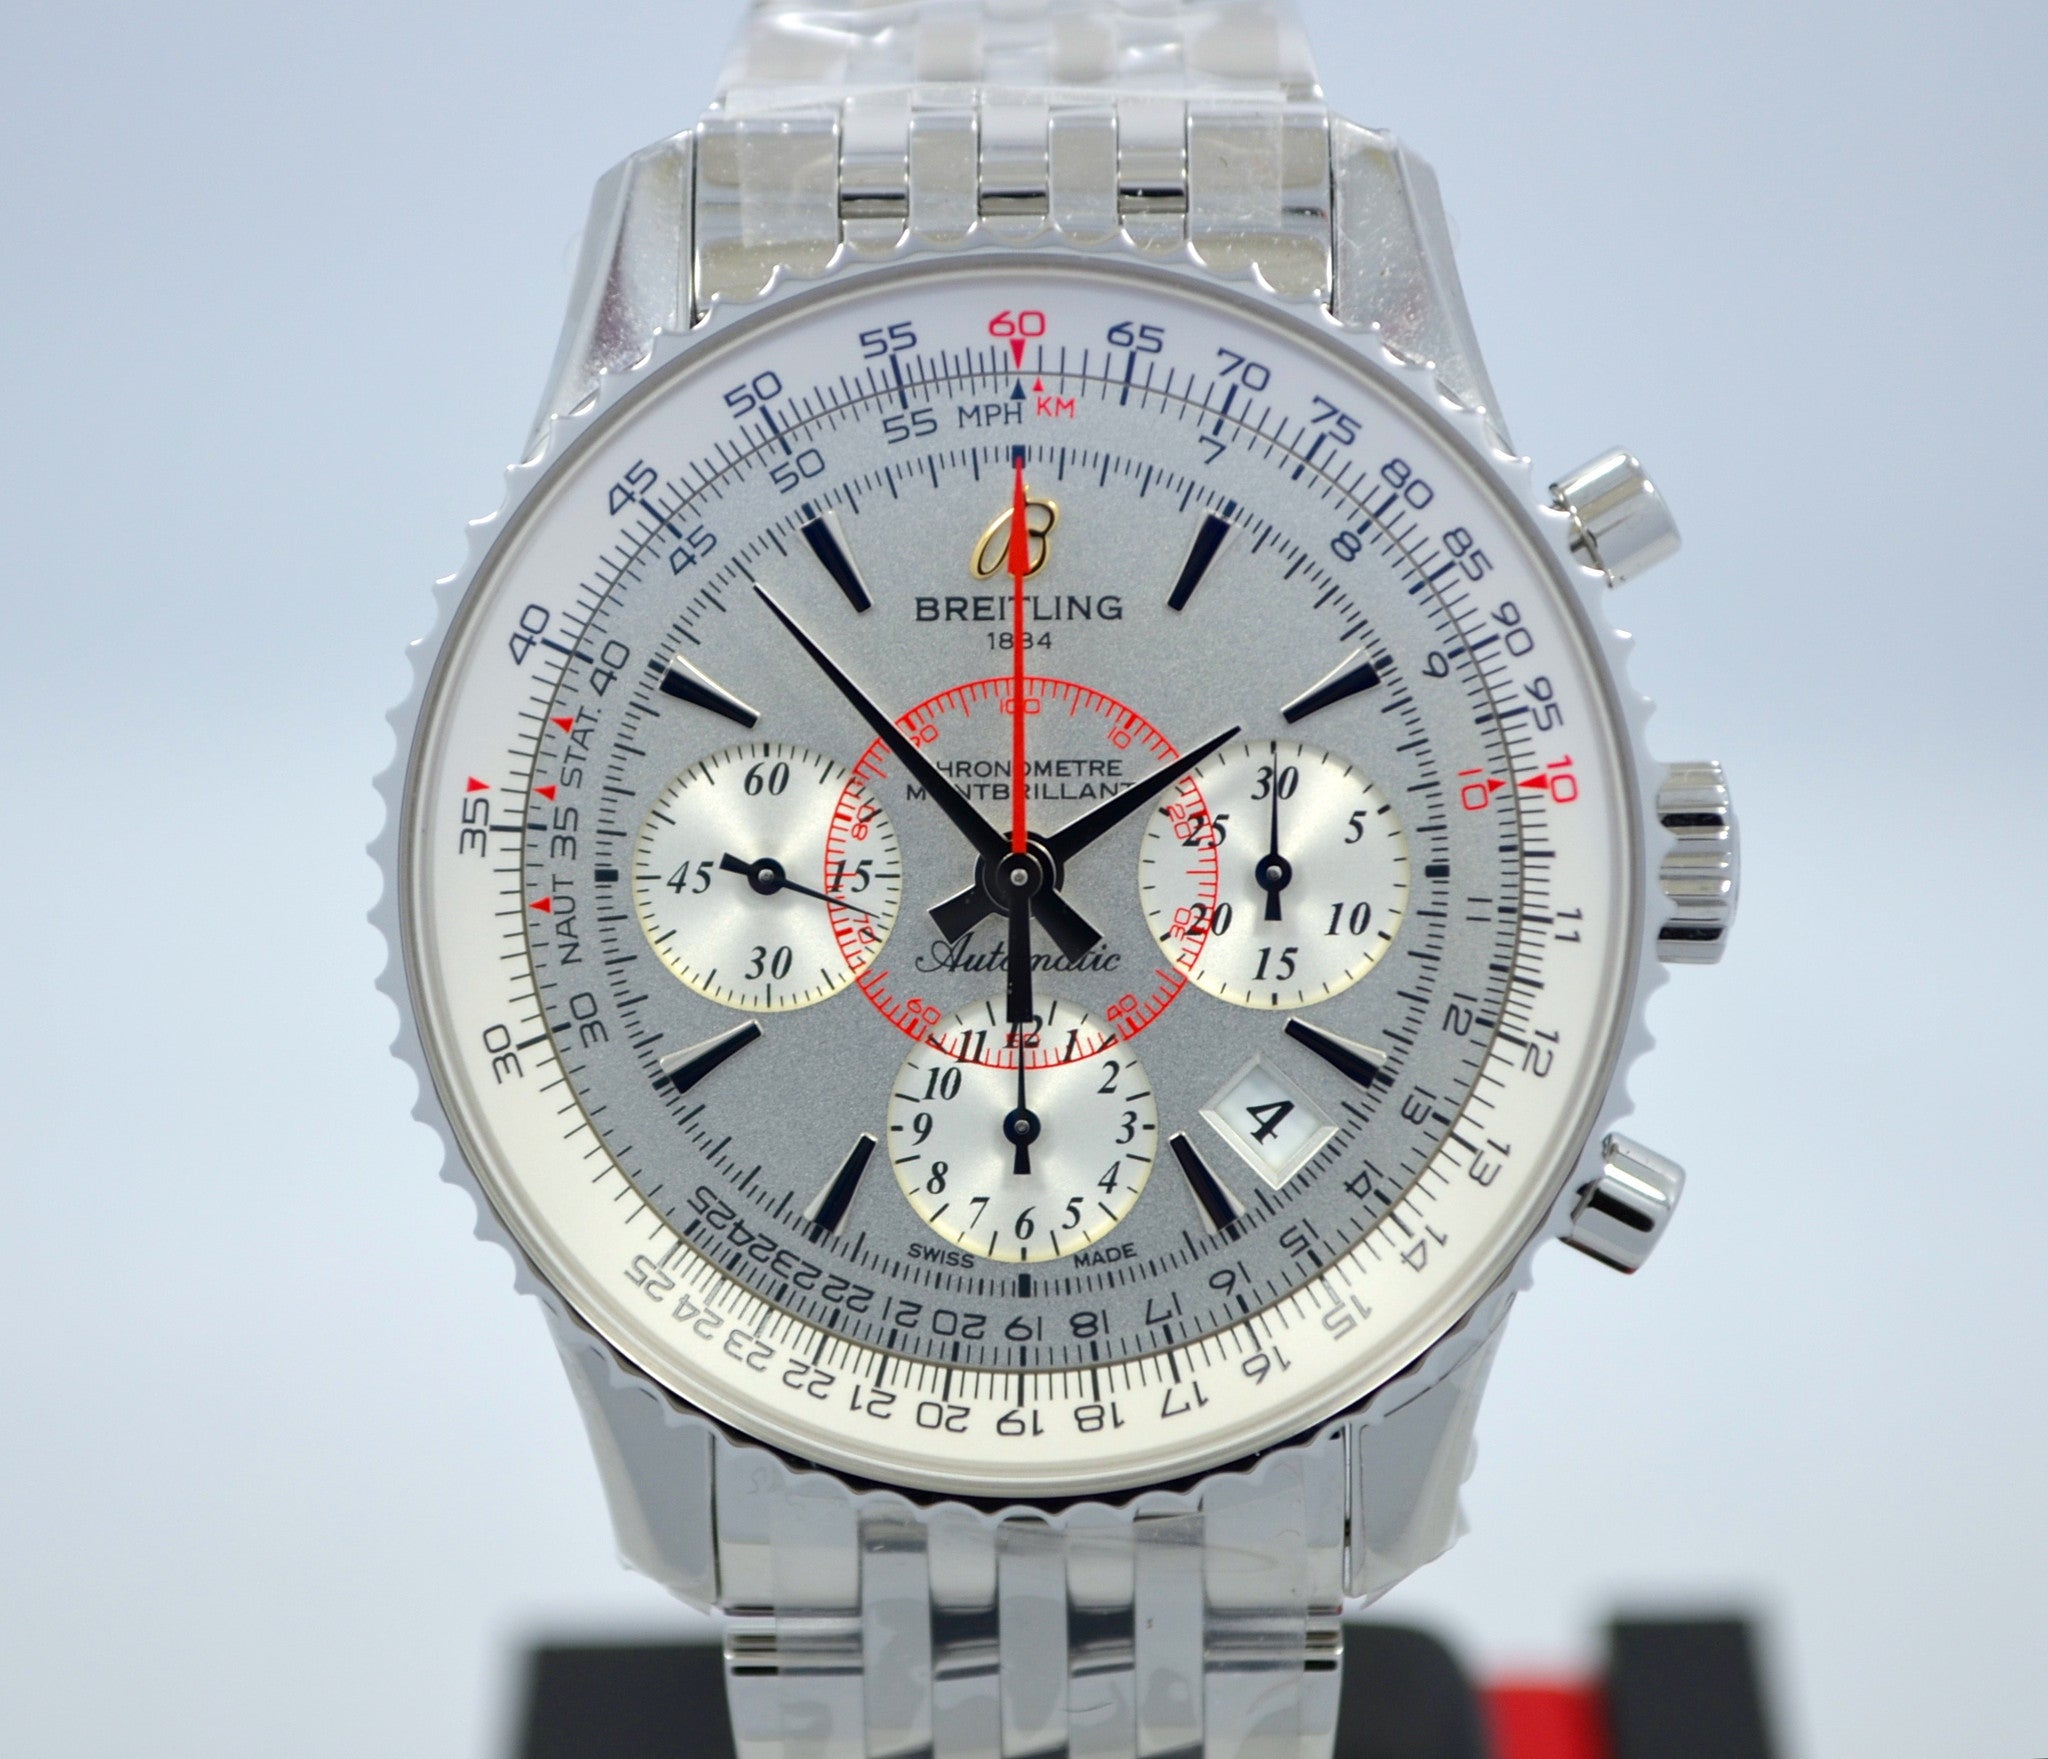 Breitling Montbrilliant 01 AB013012 Chronograph Steel Automatic Wristwatch - Hashtag Watch Company